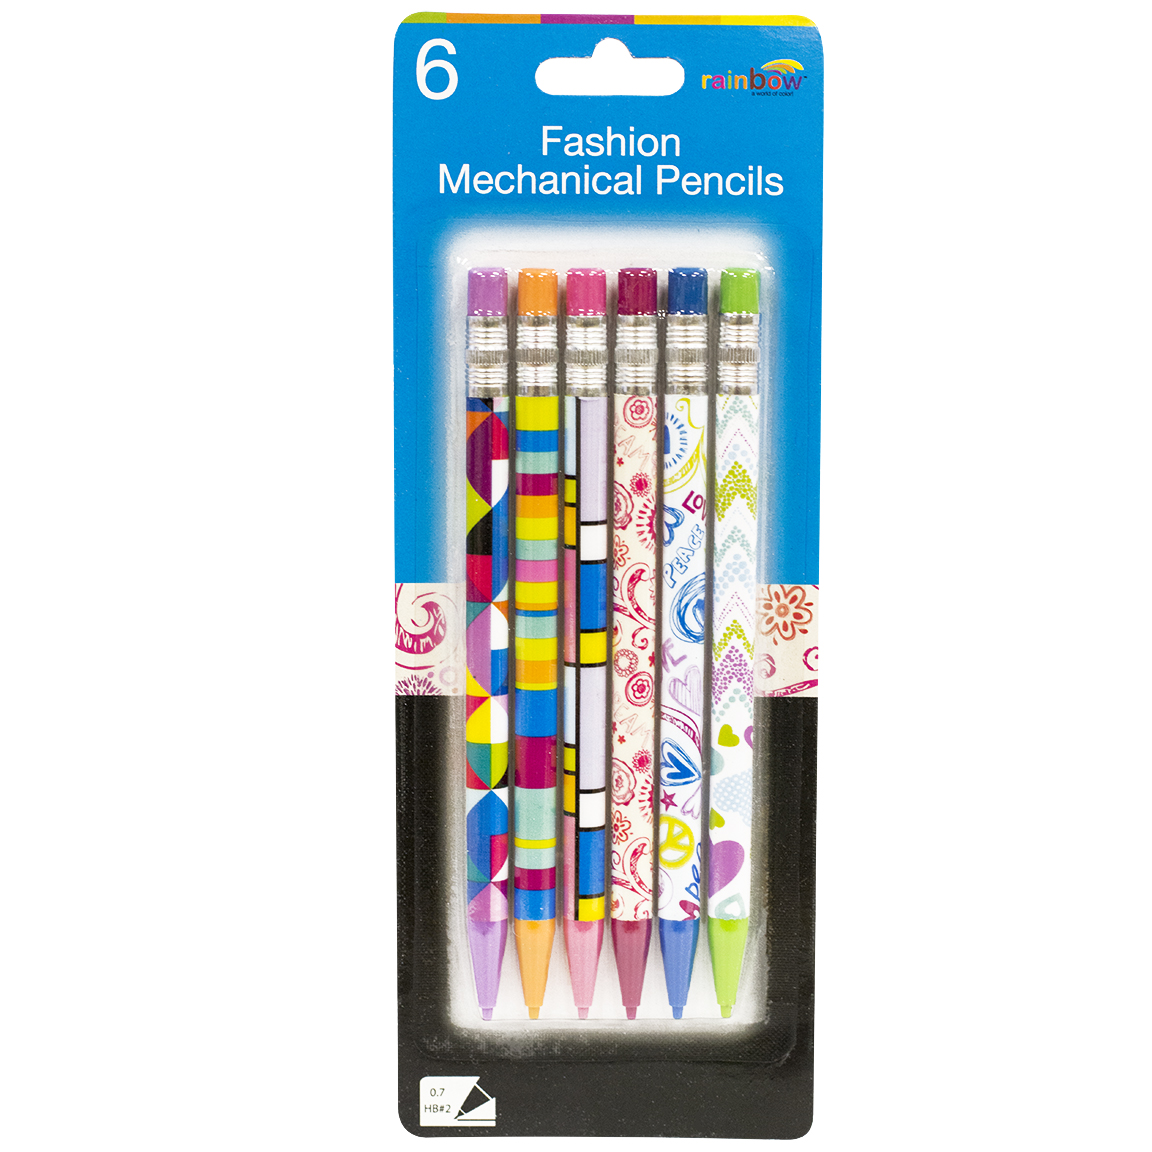 FashionMechanical Pencils6 Pack